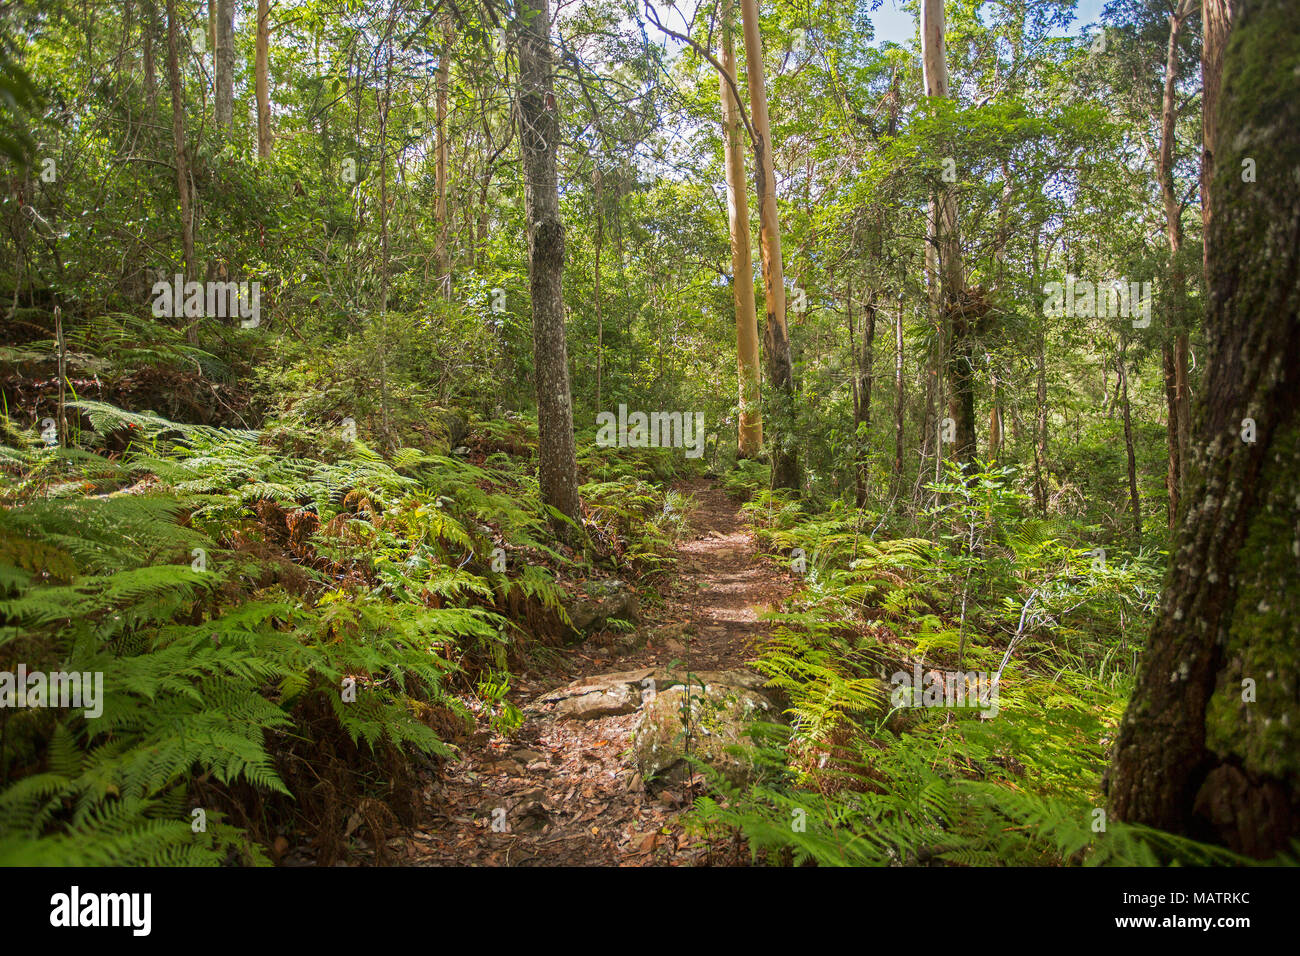 Dichten smaragdgrünen Wäldern mit Farnen und Adlerfarn durch schmale Wanderweg in Conondale Ranges National Park Queensland Australien durchtrennt Stockbild